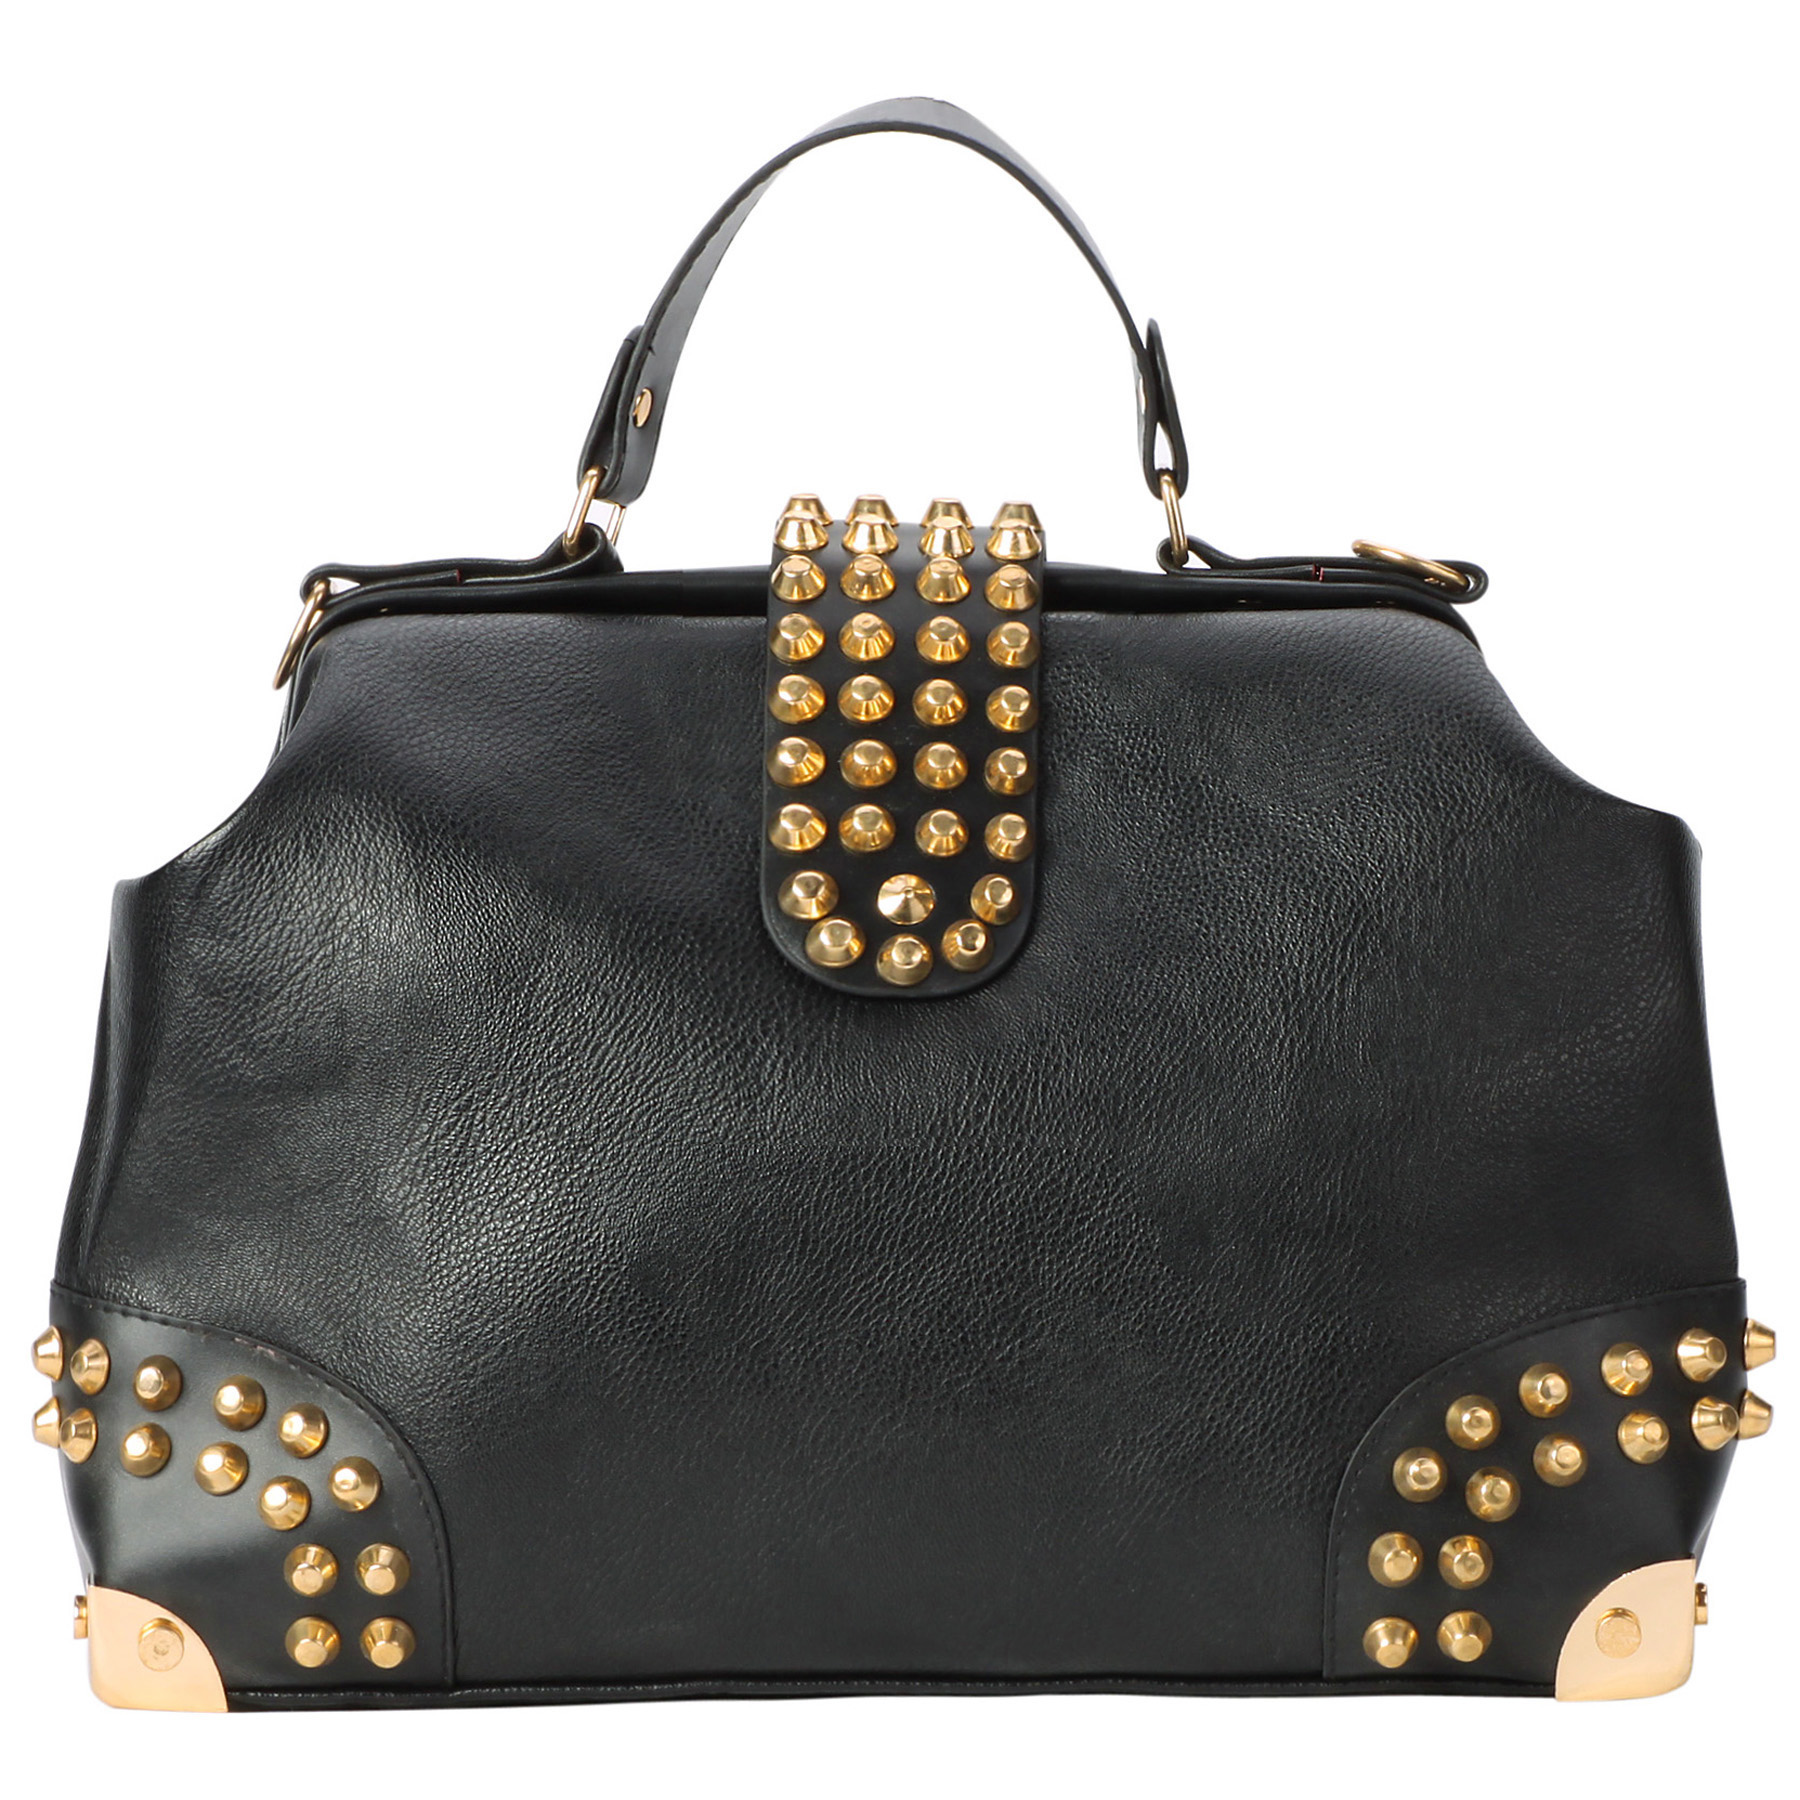 DARKO Black Gothic Gold Studded Doctor Style Office Tote Purse front